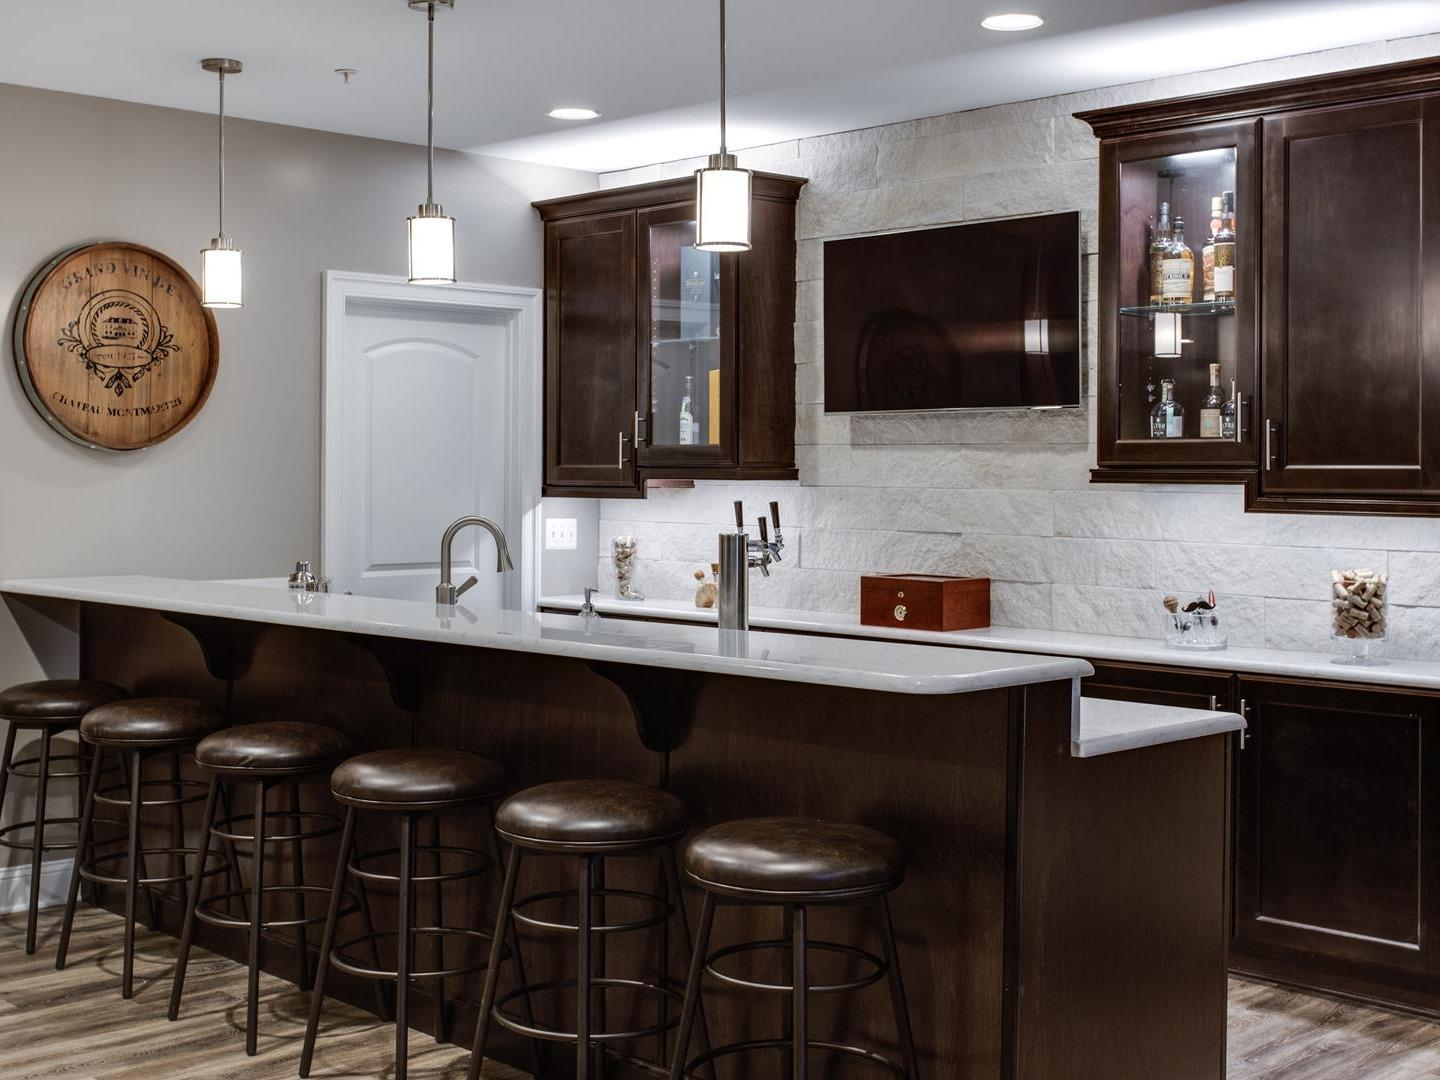 Reico Kitchen & Bath - Kitchen Remodeling & Planning ...